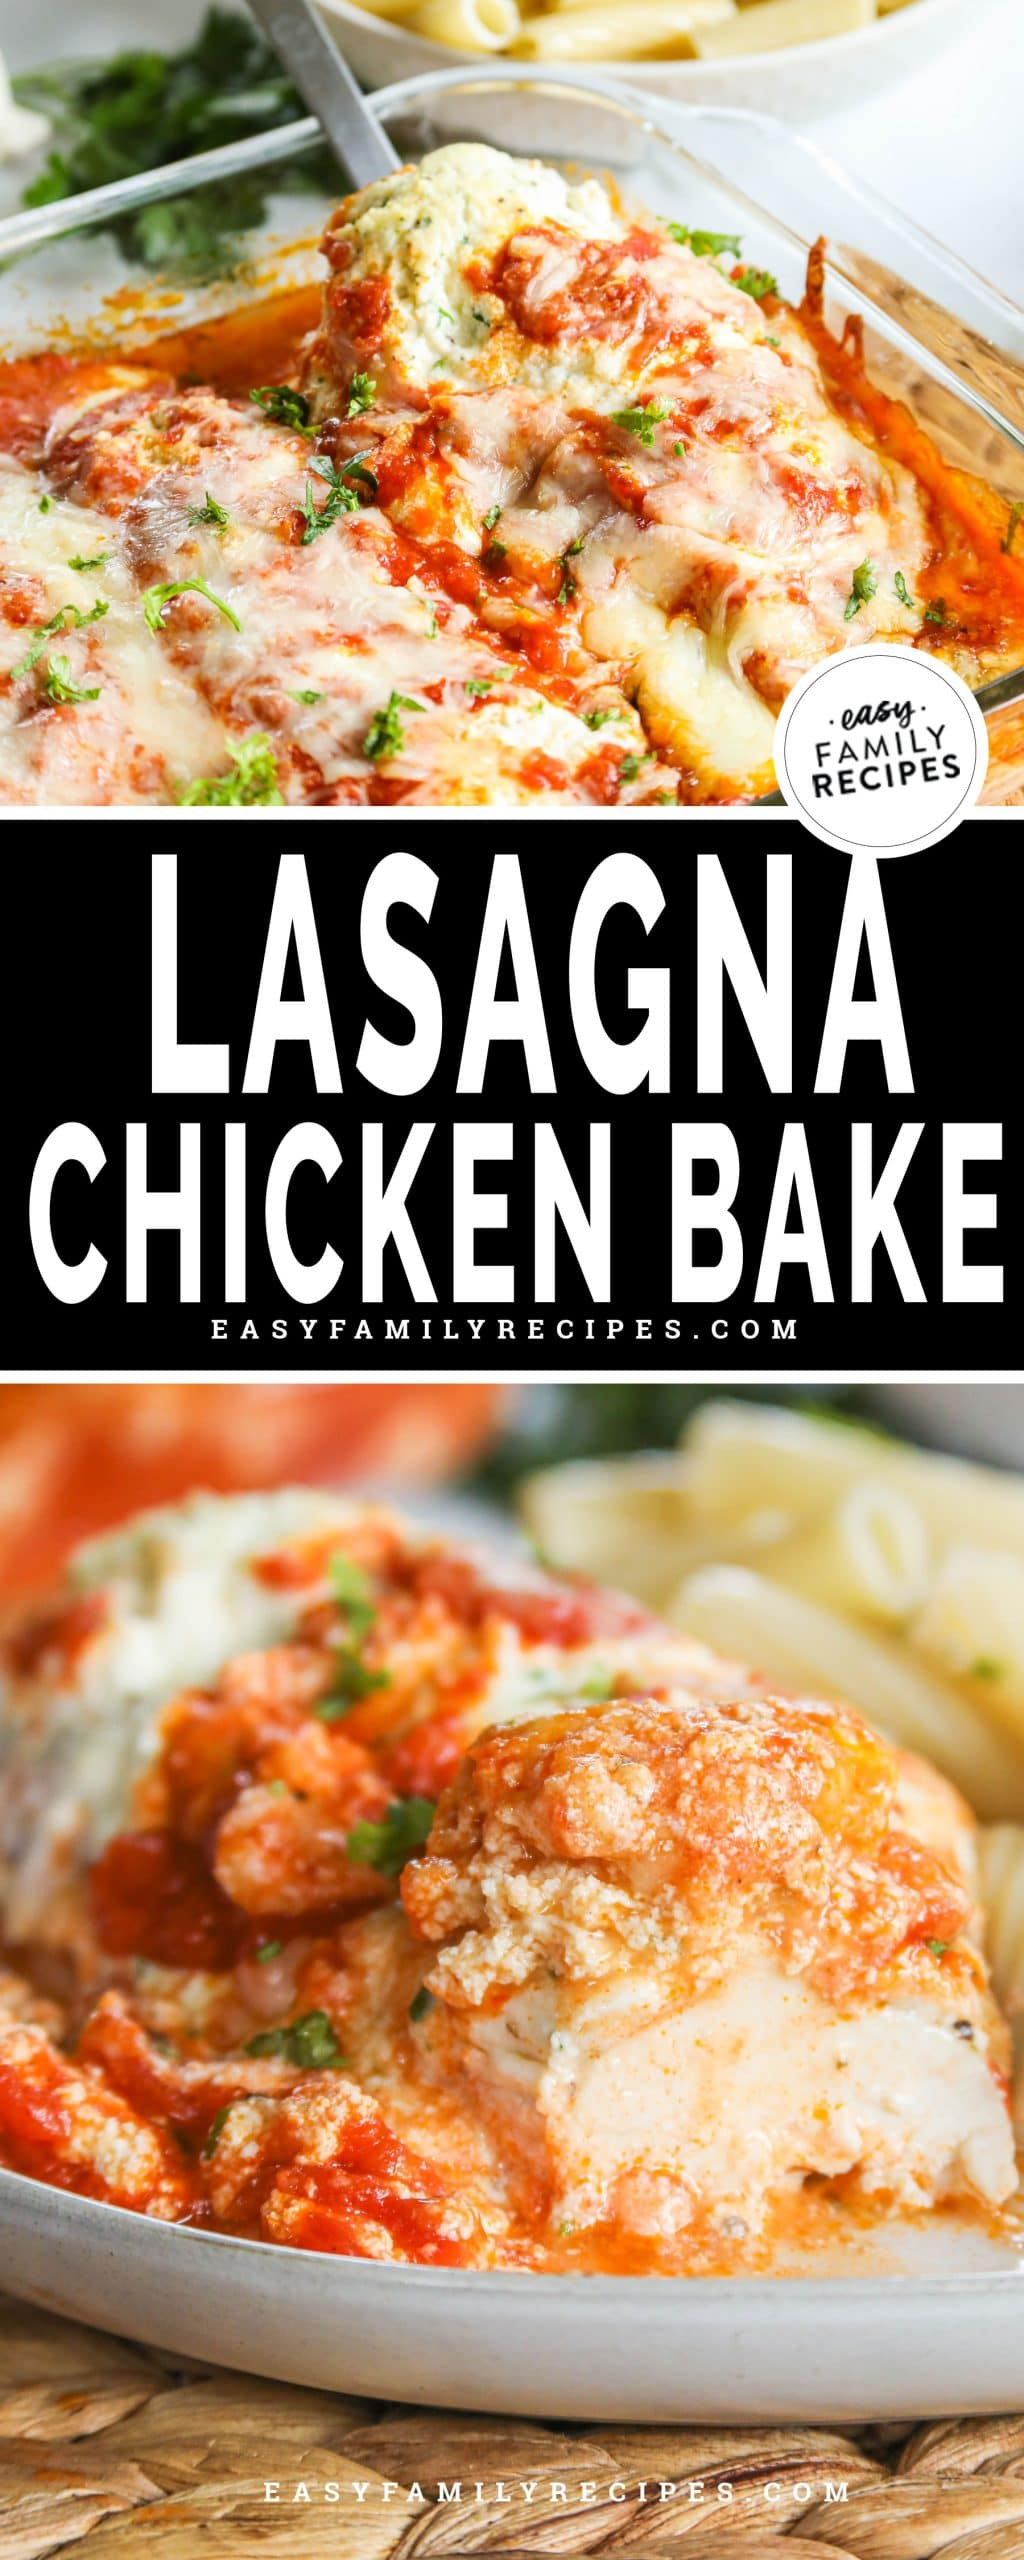 Lasagna Chicken breast served with pasta cut into to show how tender and juicy it is